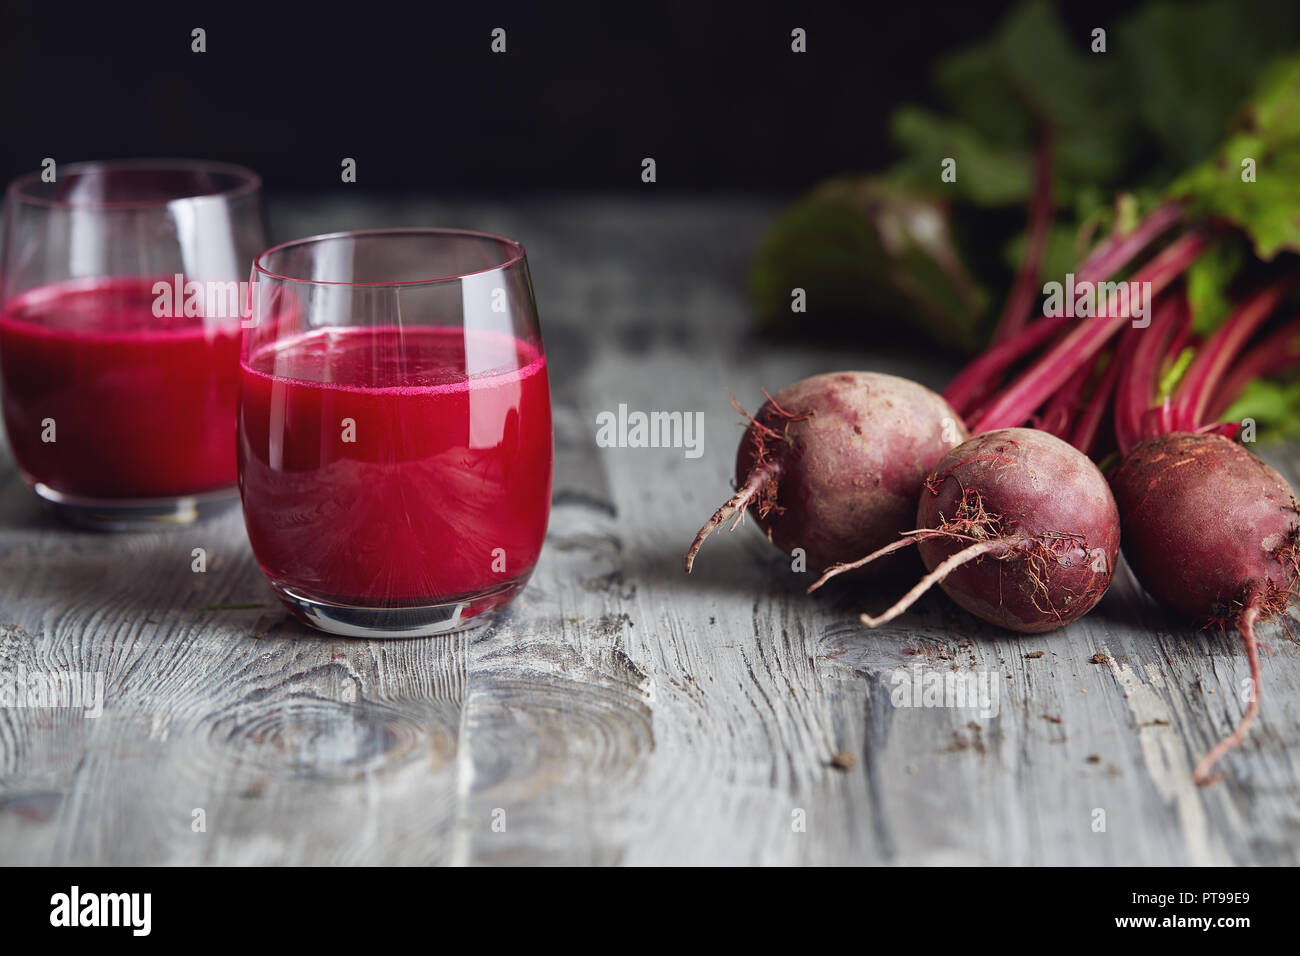 Detox juice with freshly picked bunch of beetroot. Fresh beets on a wooden table. - Stock Image